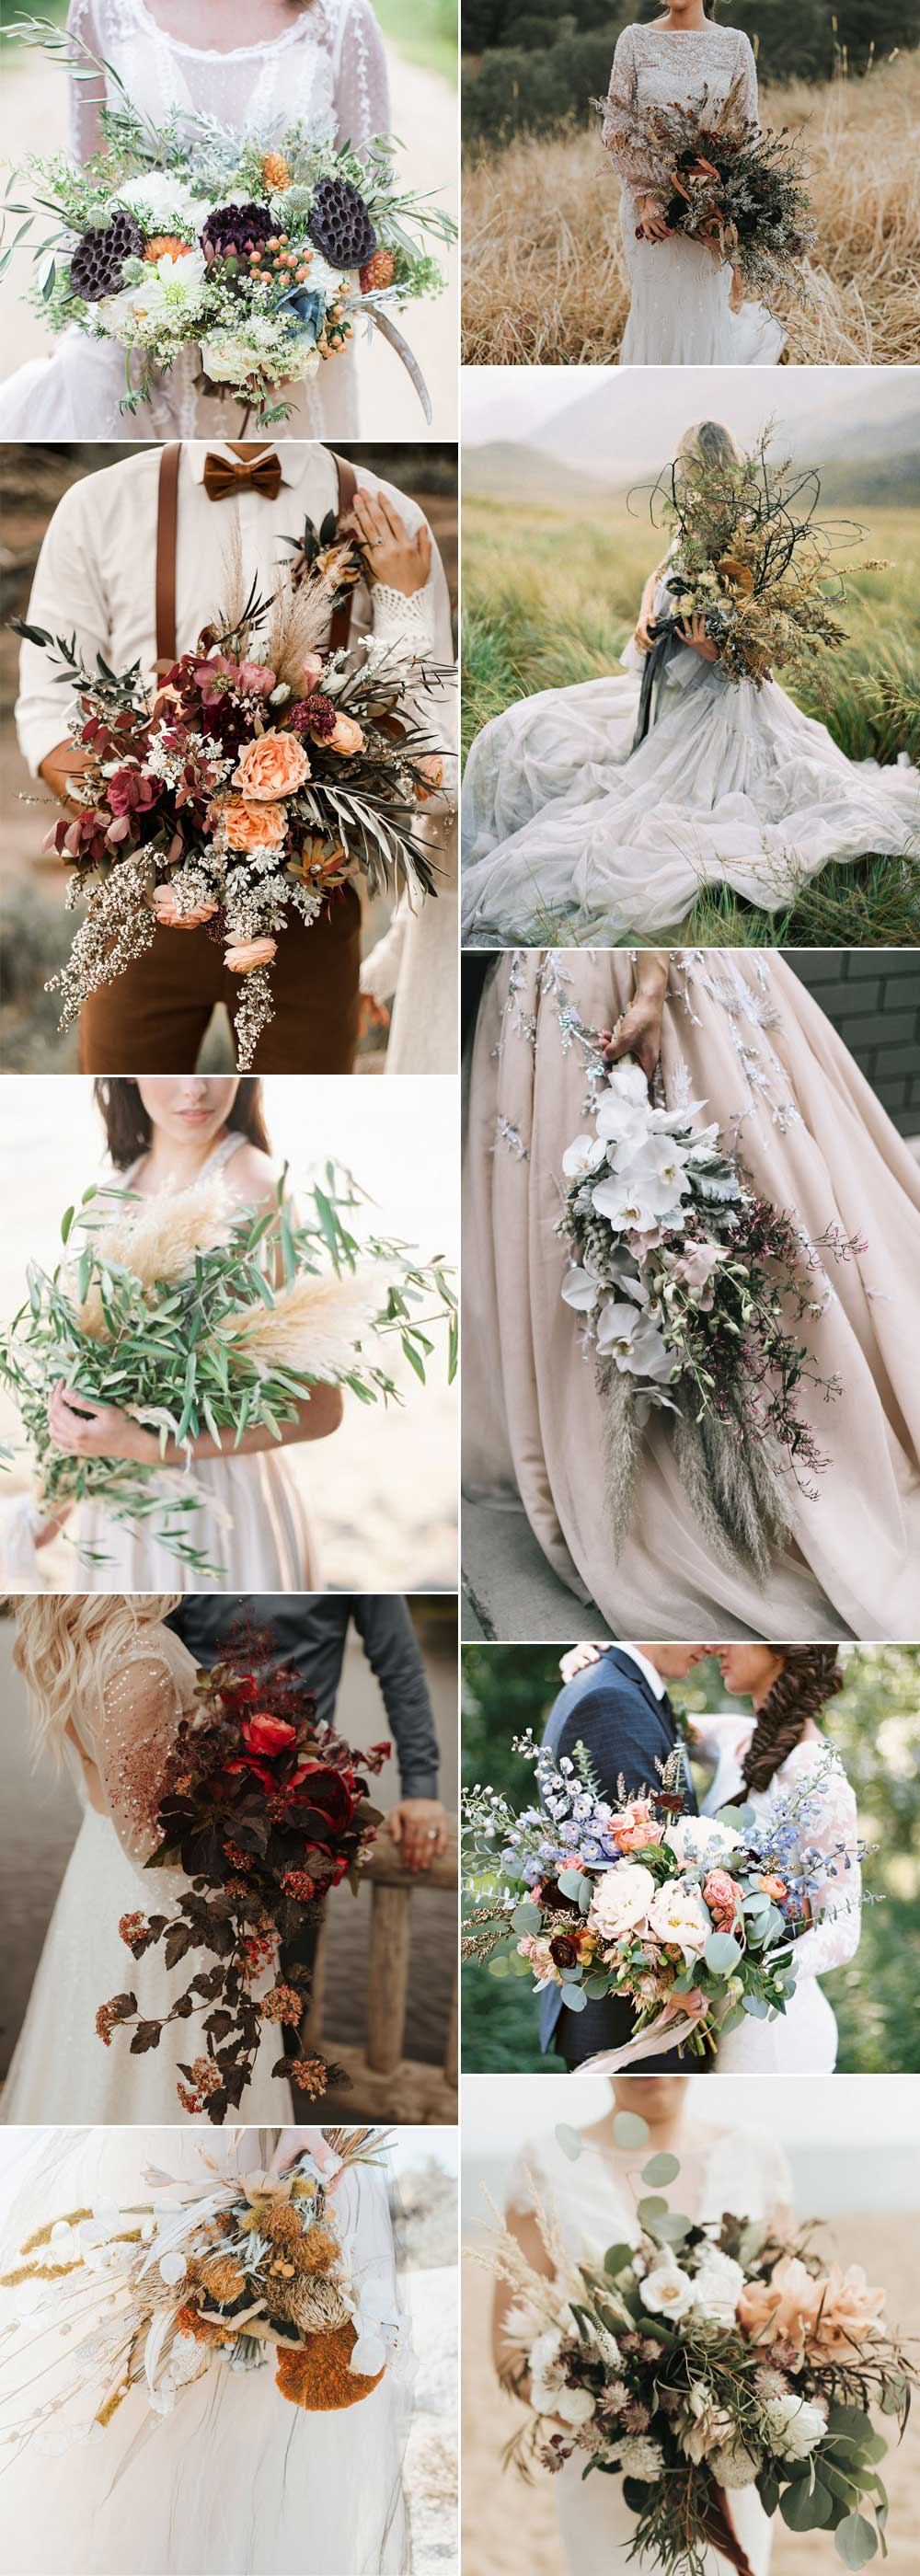 Unusual bouquets for weddings